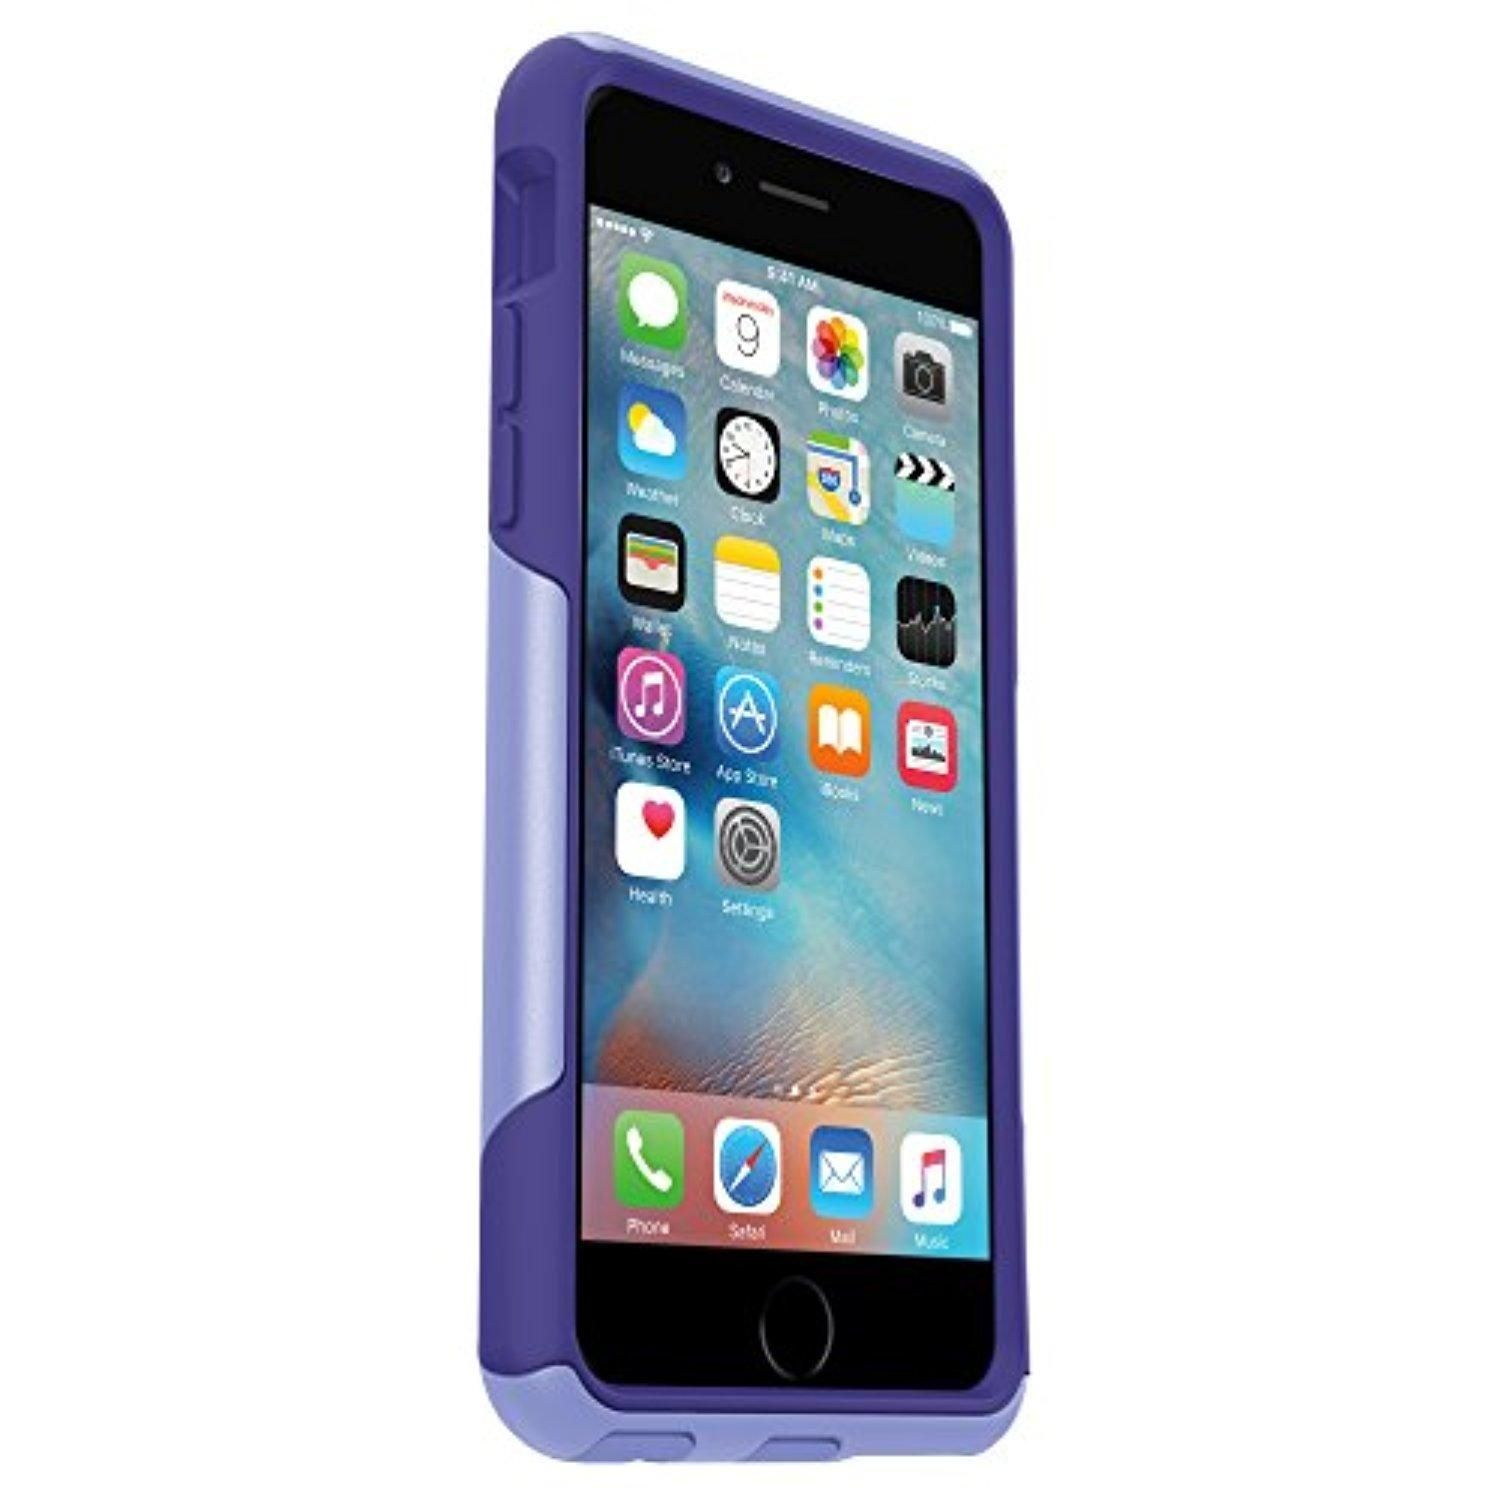 OtterBox COMMUTER SERIES iPhone 6/6s Case - Frustration-Free Packaging - PURPLE AMETHYST (PERIWINKLE PURPLE/LIBERTY PURPLE) - Brought to you by Avarsha.com